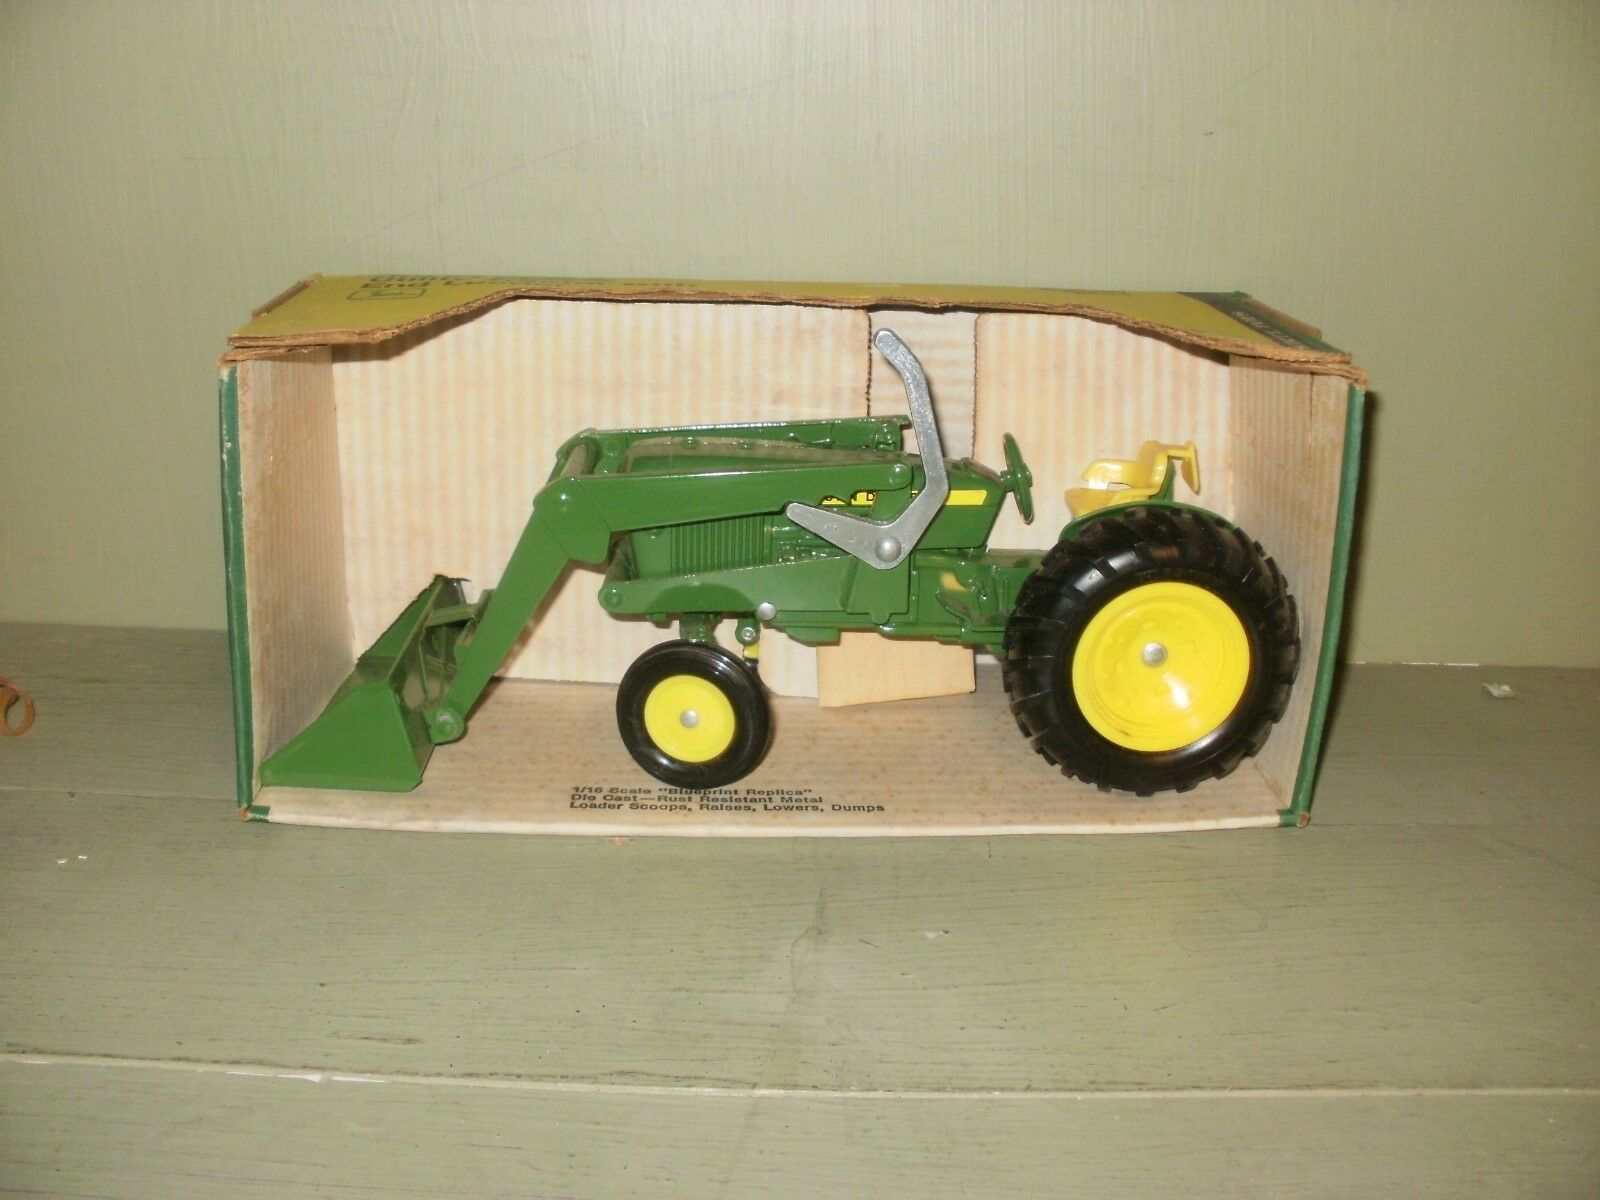 ERTL, JOHN DEERE UTILITY TRACTOR WITH LOADER STKDIECAST, 1 16 SCALE